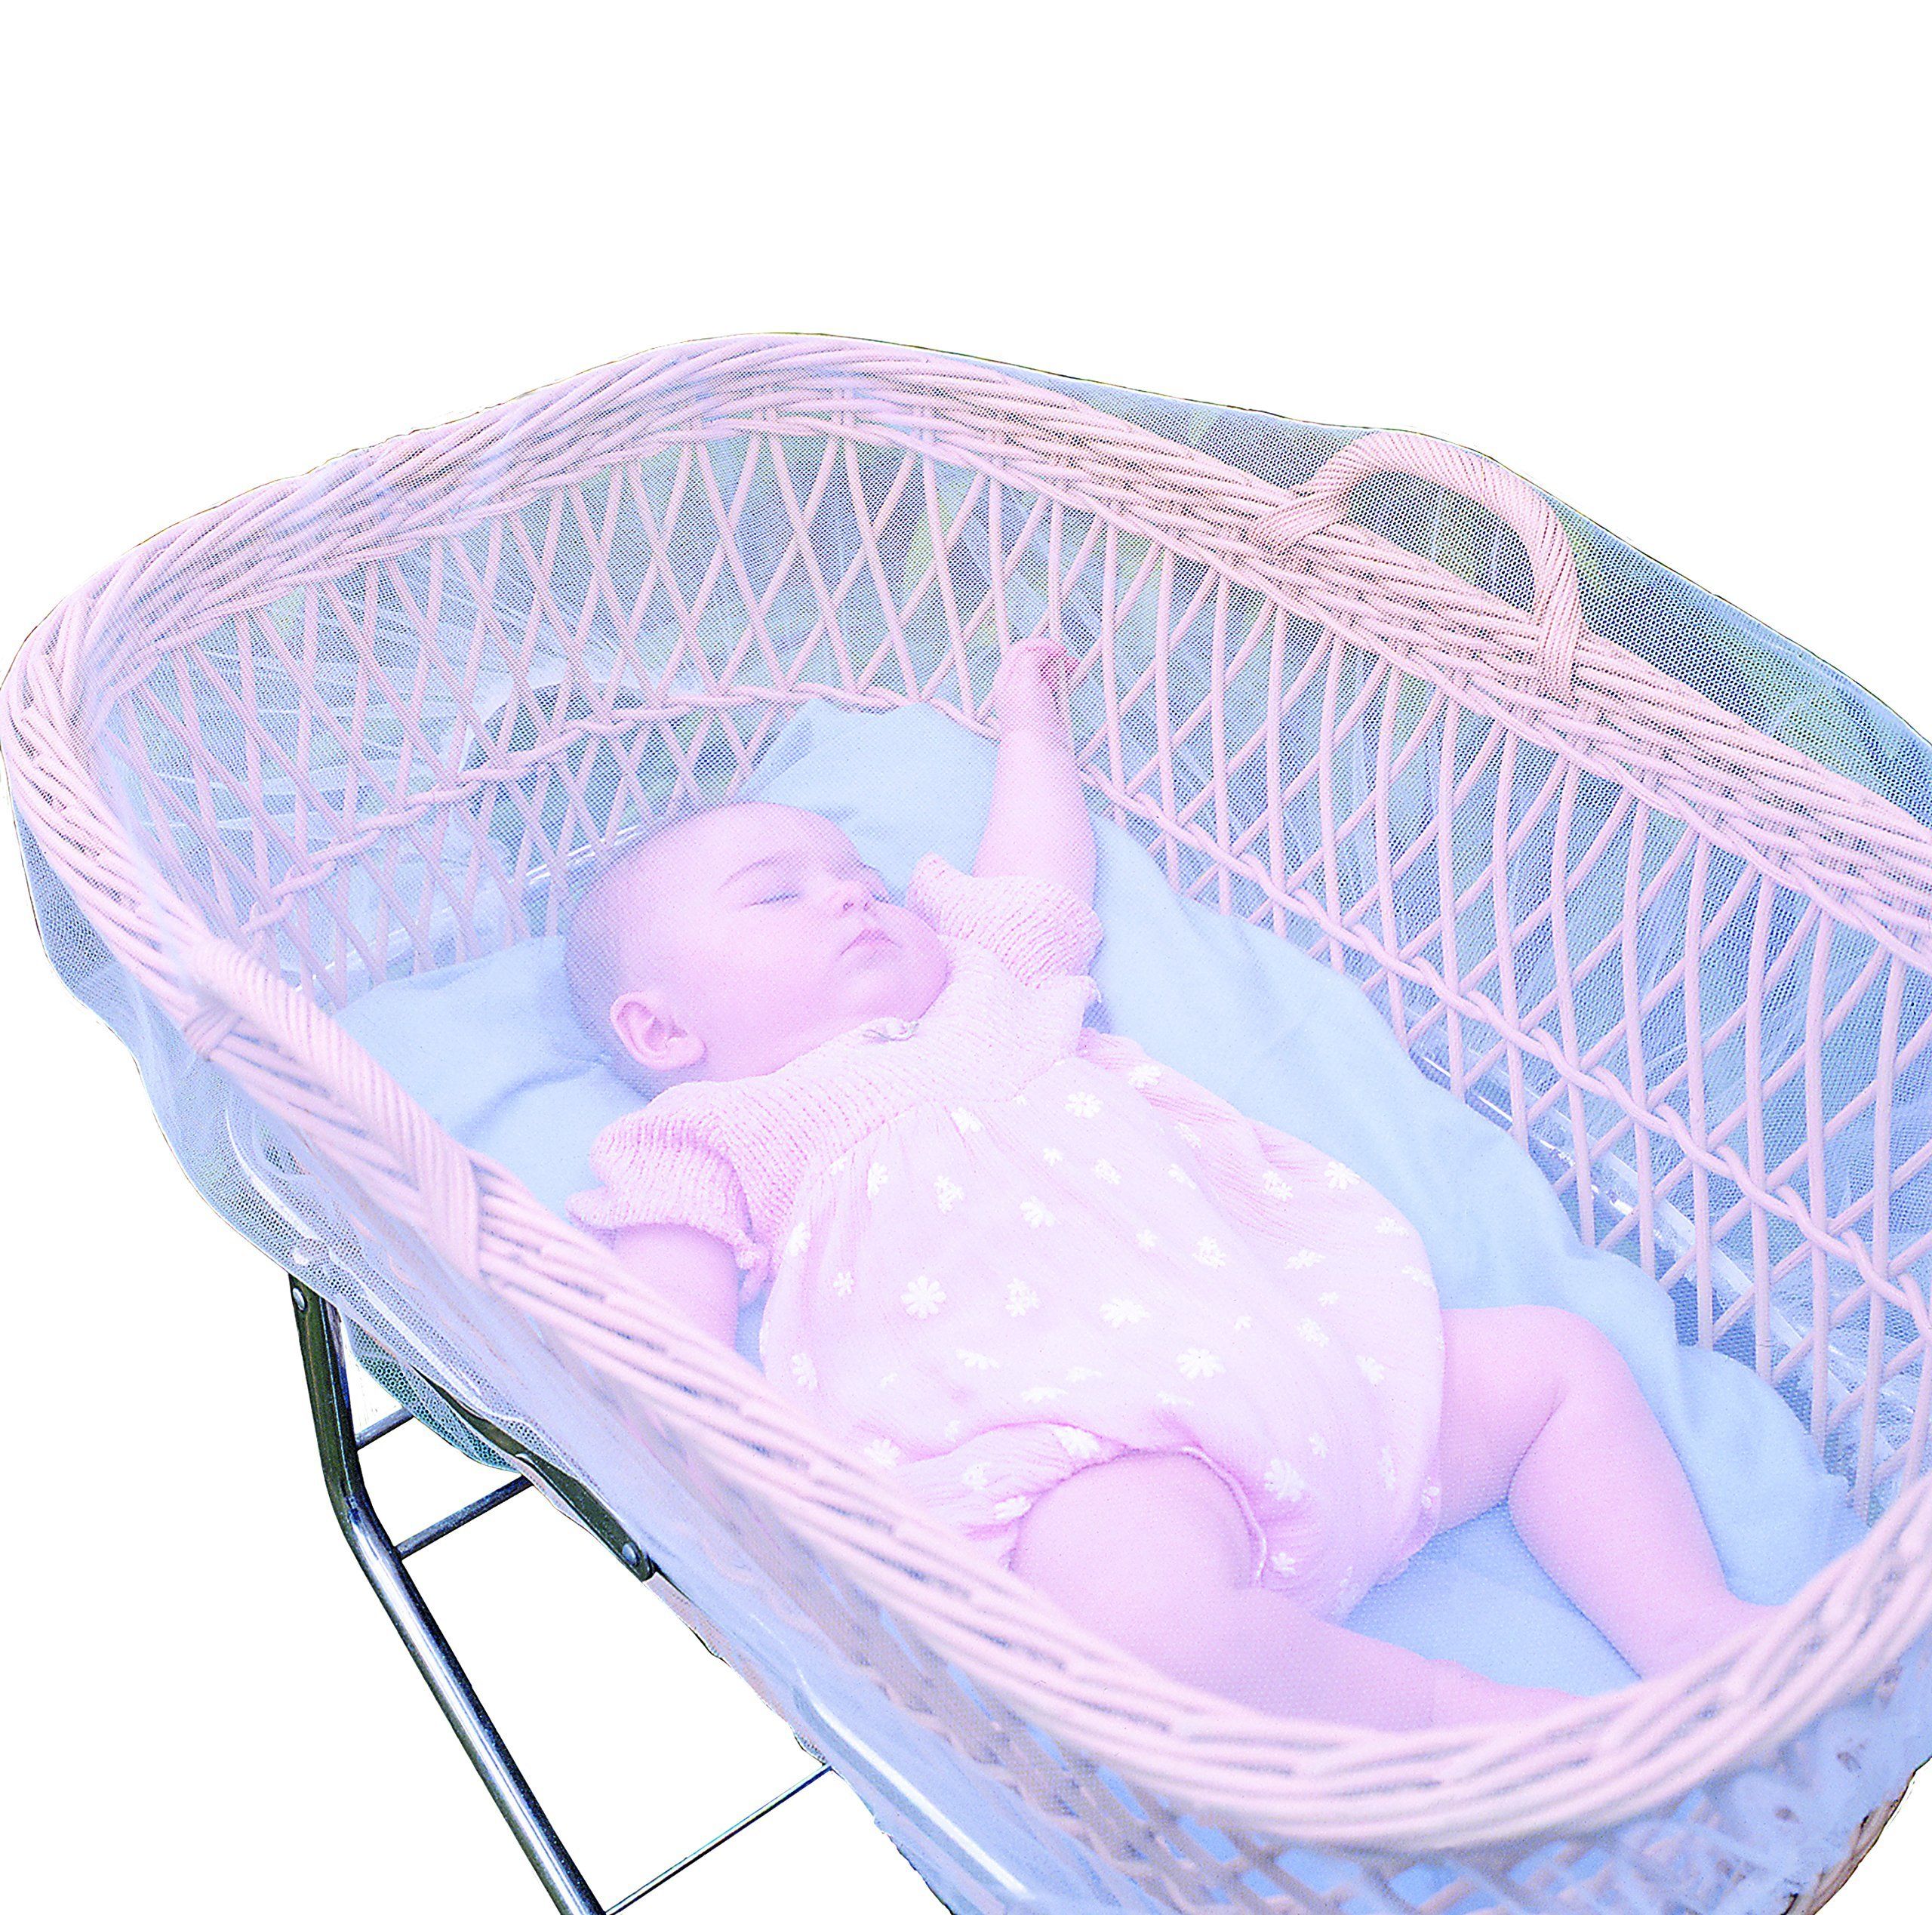 Tee-Zed F204 Stroller Insect Netting